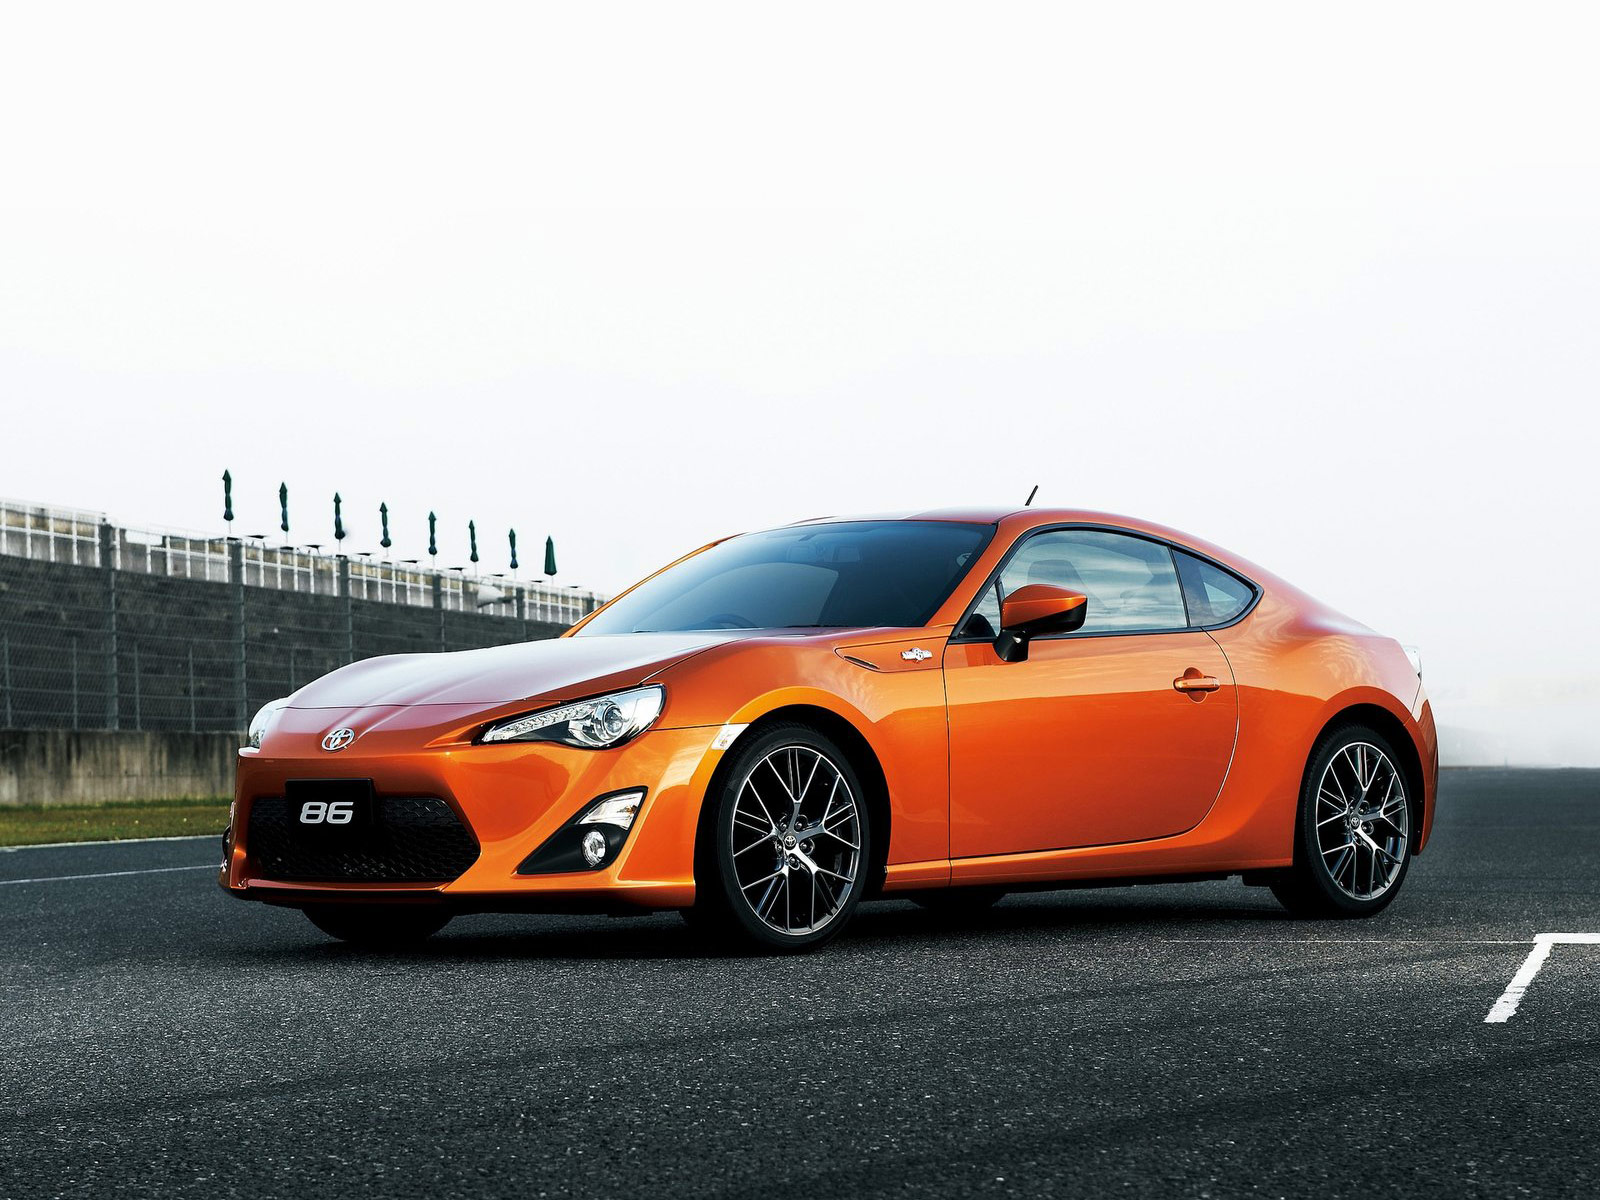 2013 toyota gt86 auto insurance information. Black Bedroom Furniture Sets. Home Design Ideas